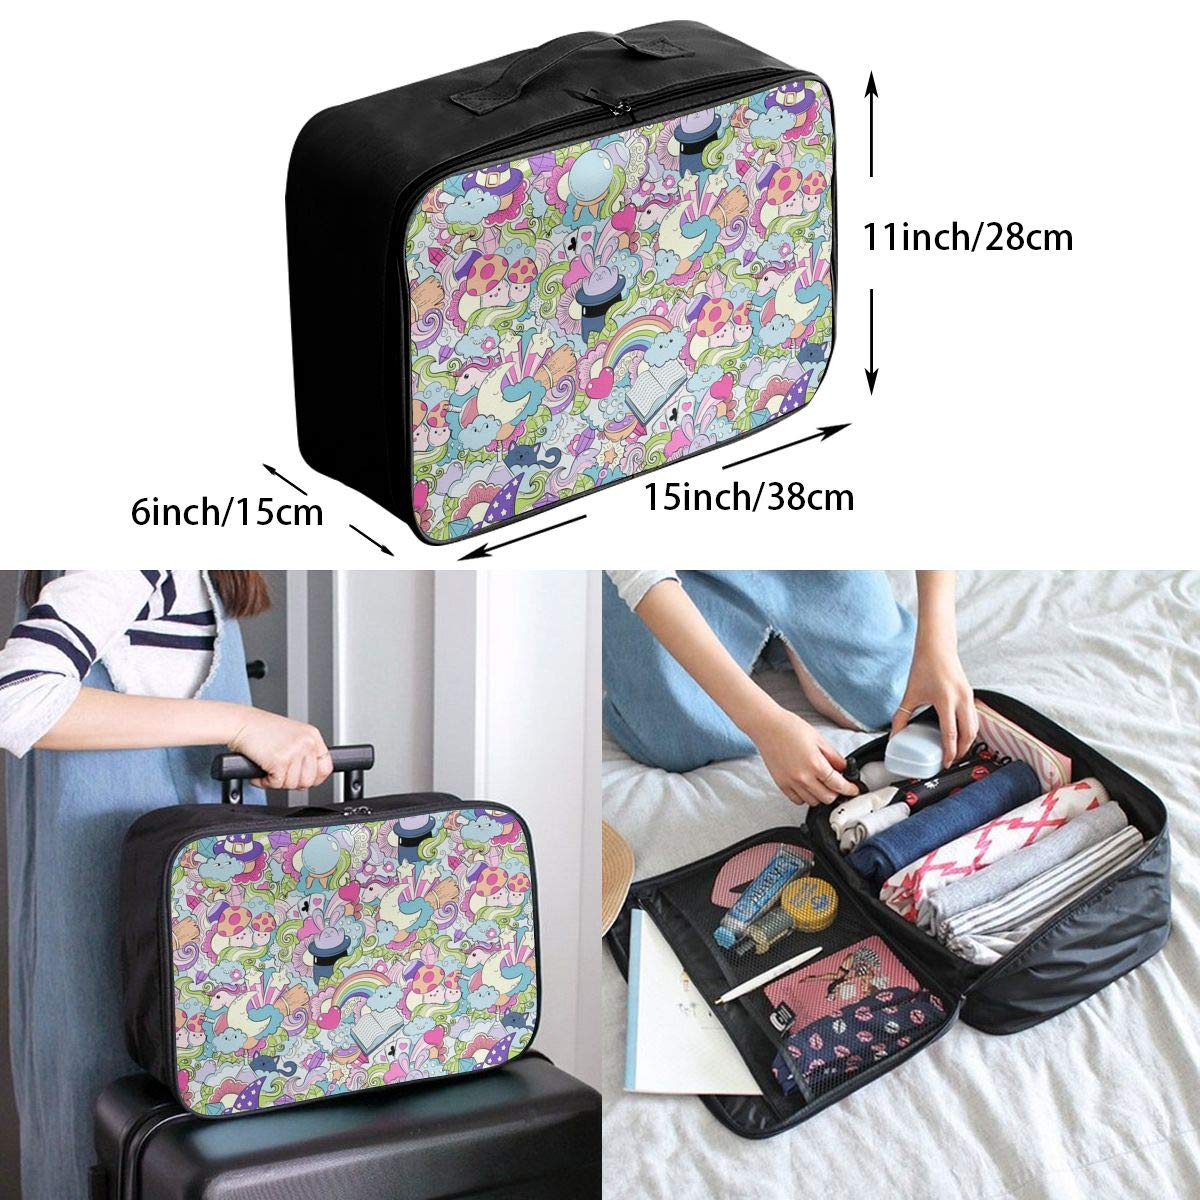 YyTiin Magic Tricks Cards Hat Cloud Heart Travel Fashion Lightweight Large Capacity Portable Waterproof Foldable Storage Carry Luggage Tote Bag